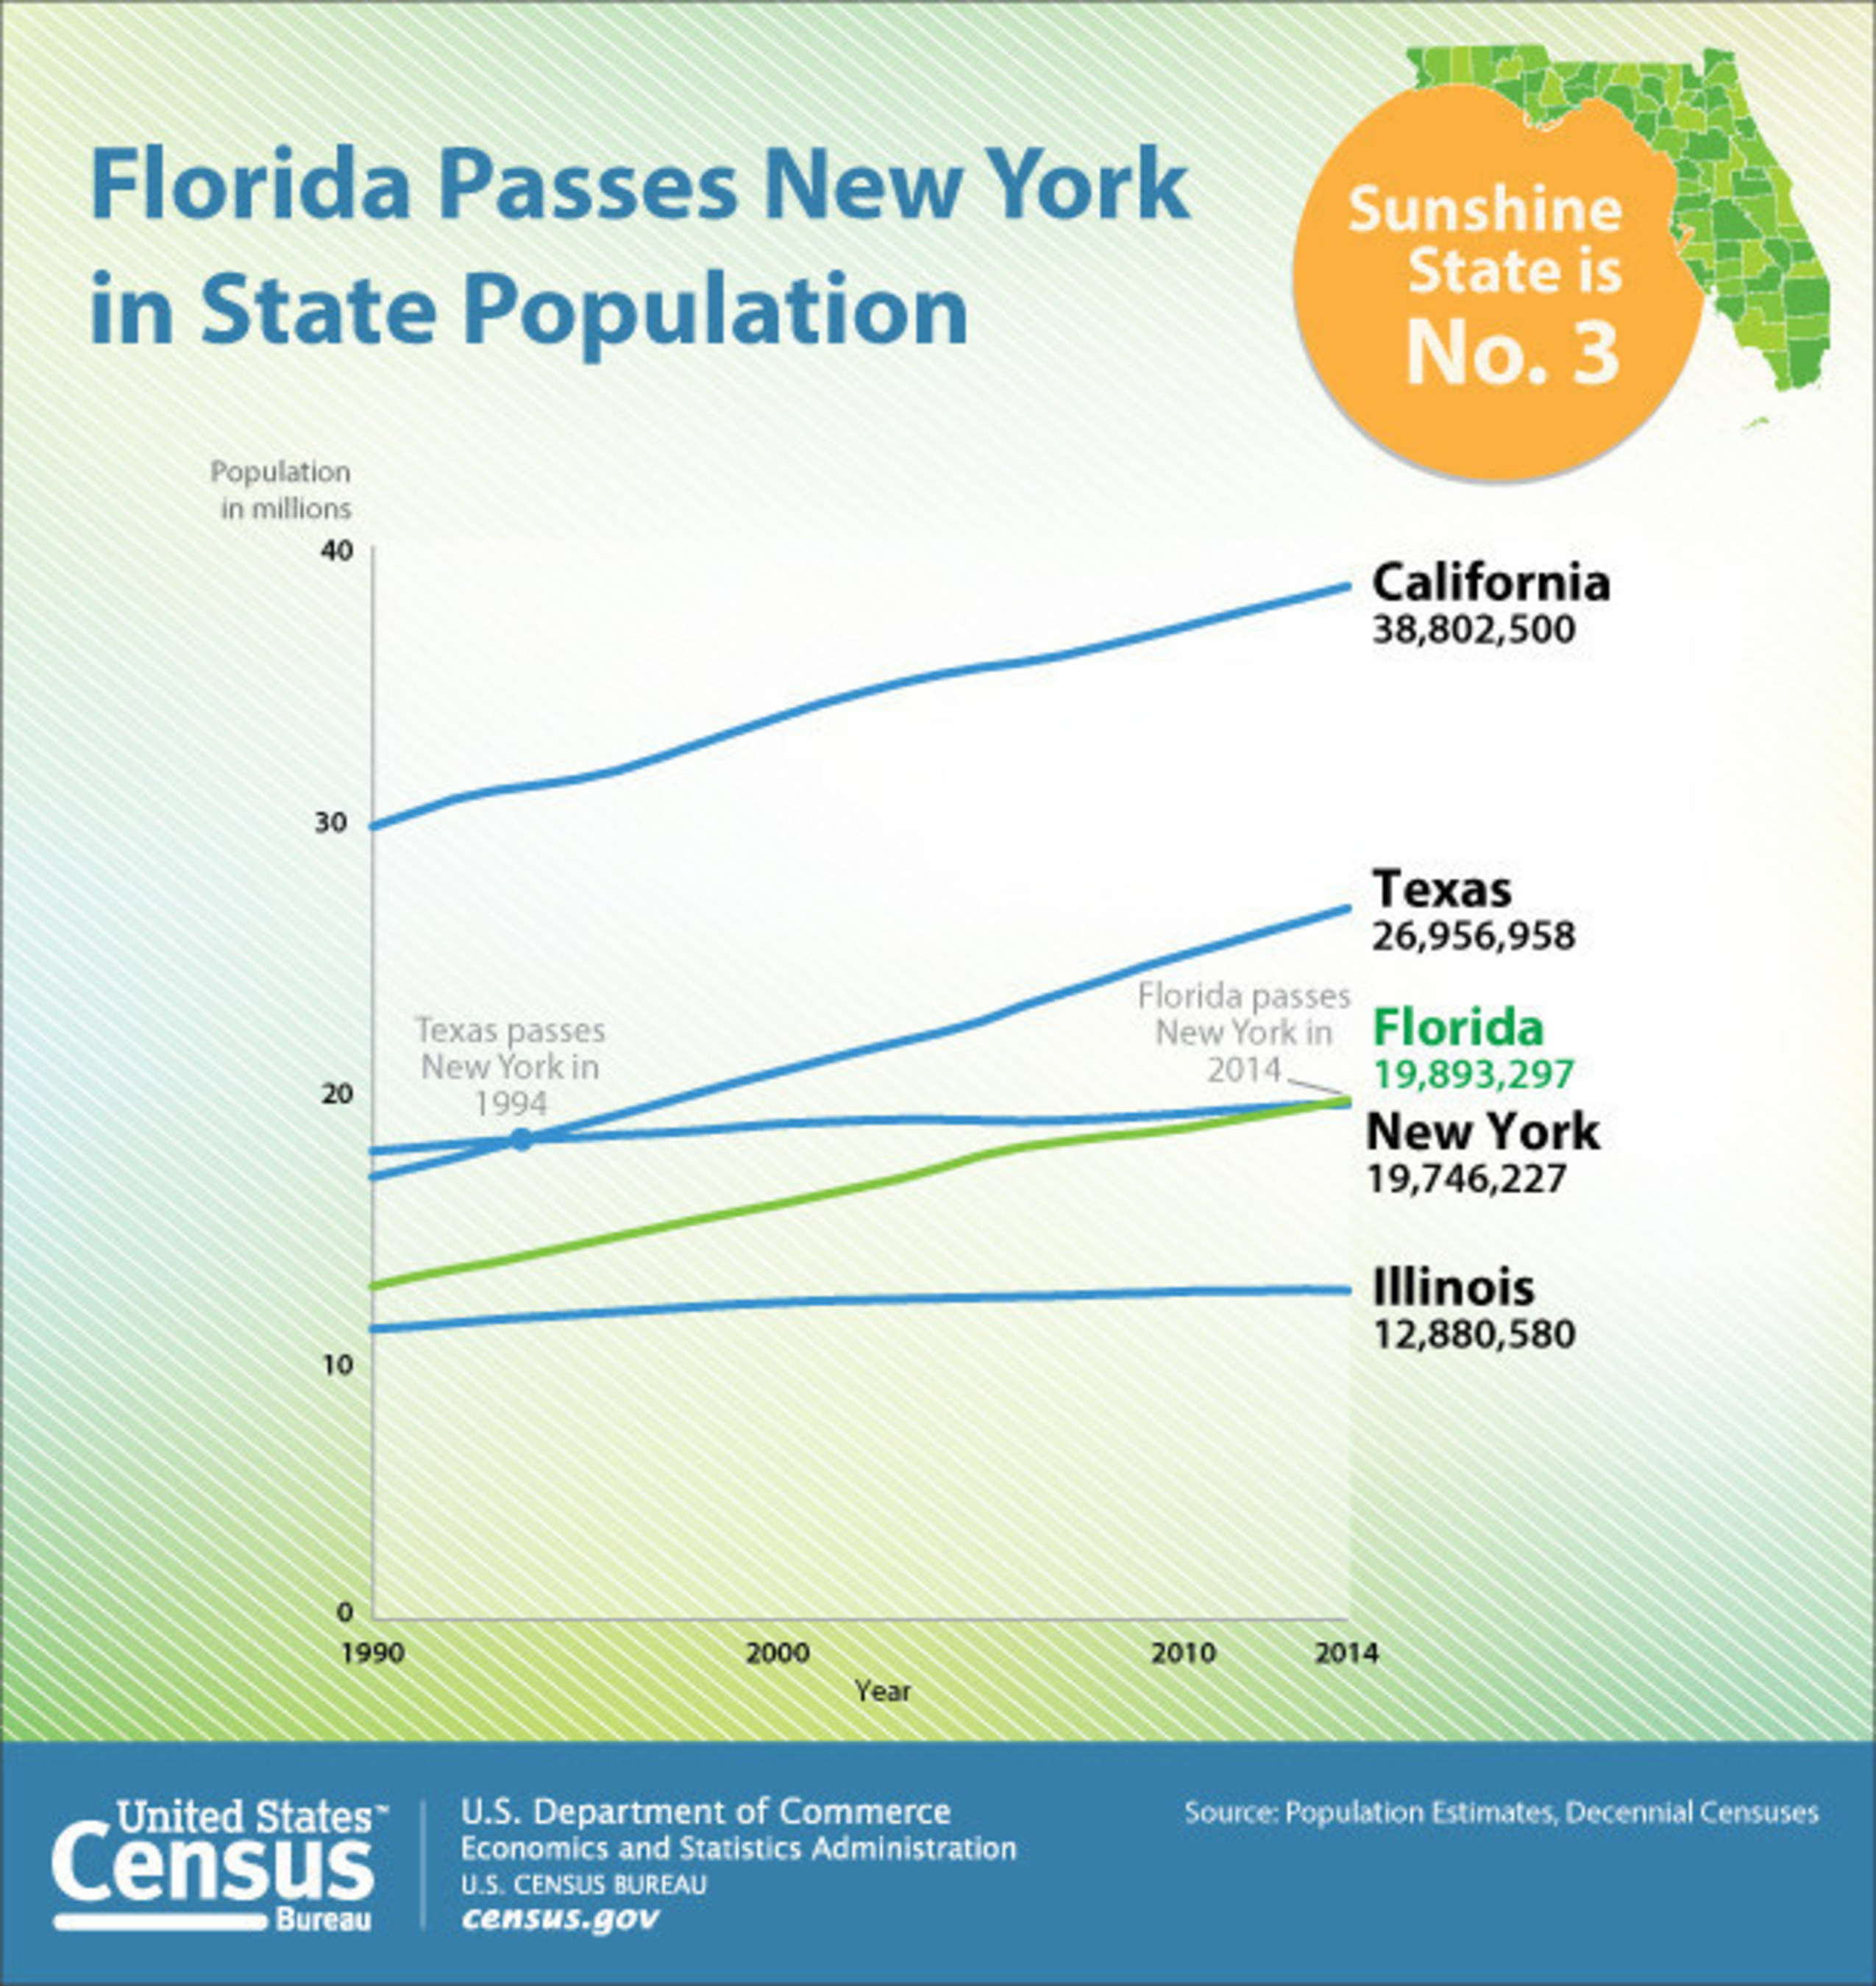 By adding an average of 803 new residents daily from July 1, 2013, and July 1, 2014, Florida passed New York to become the nation's third most populous state.